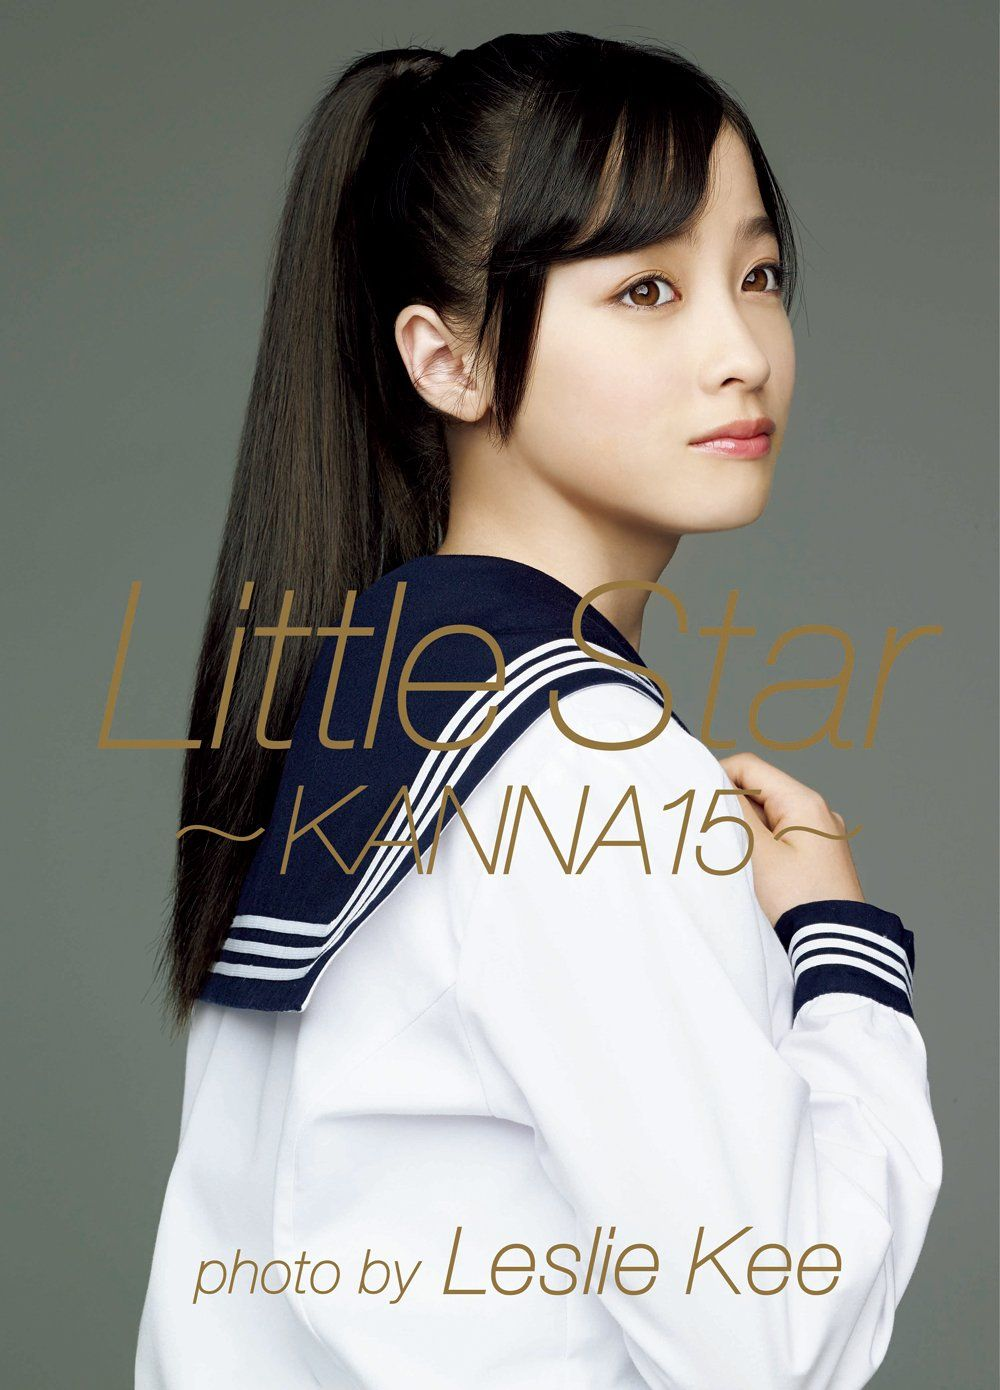 Image result for 橋本環奈 Little Star 〜KANNA15〜